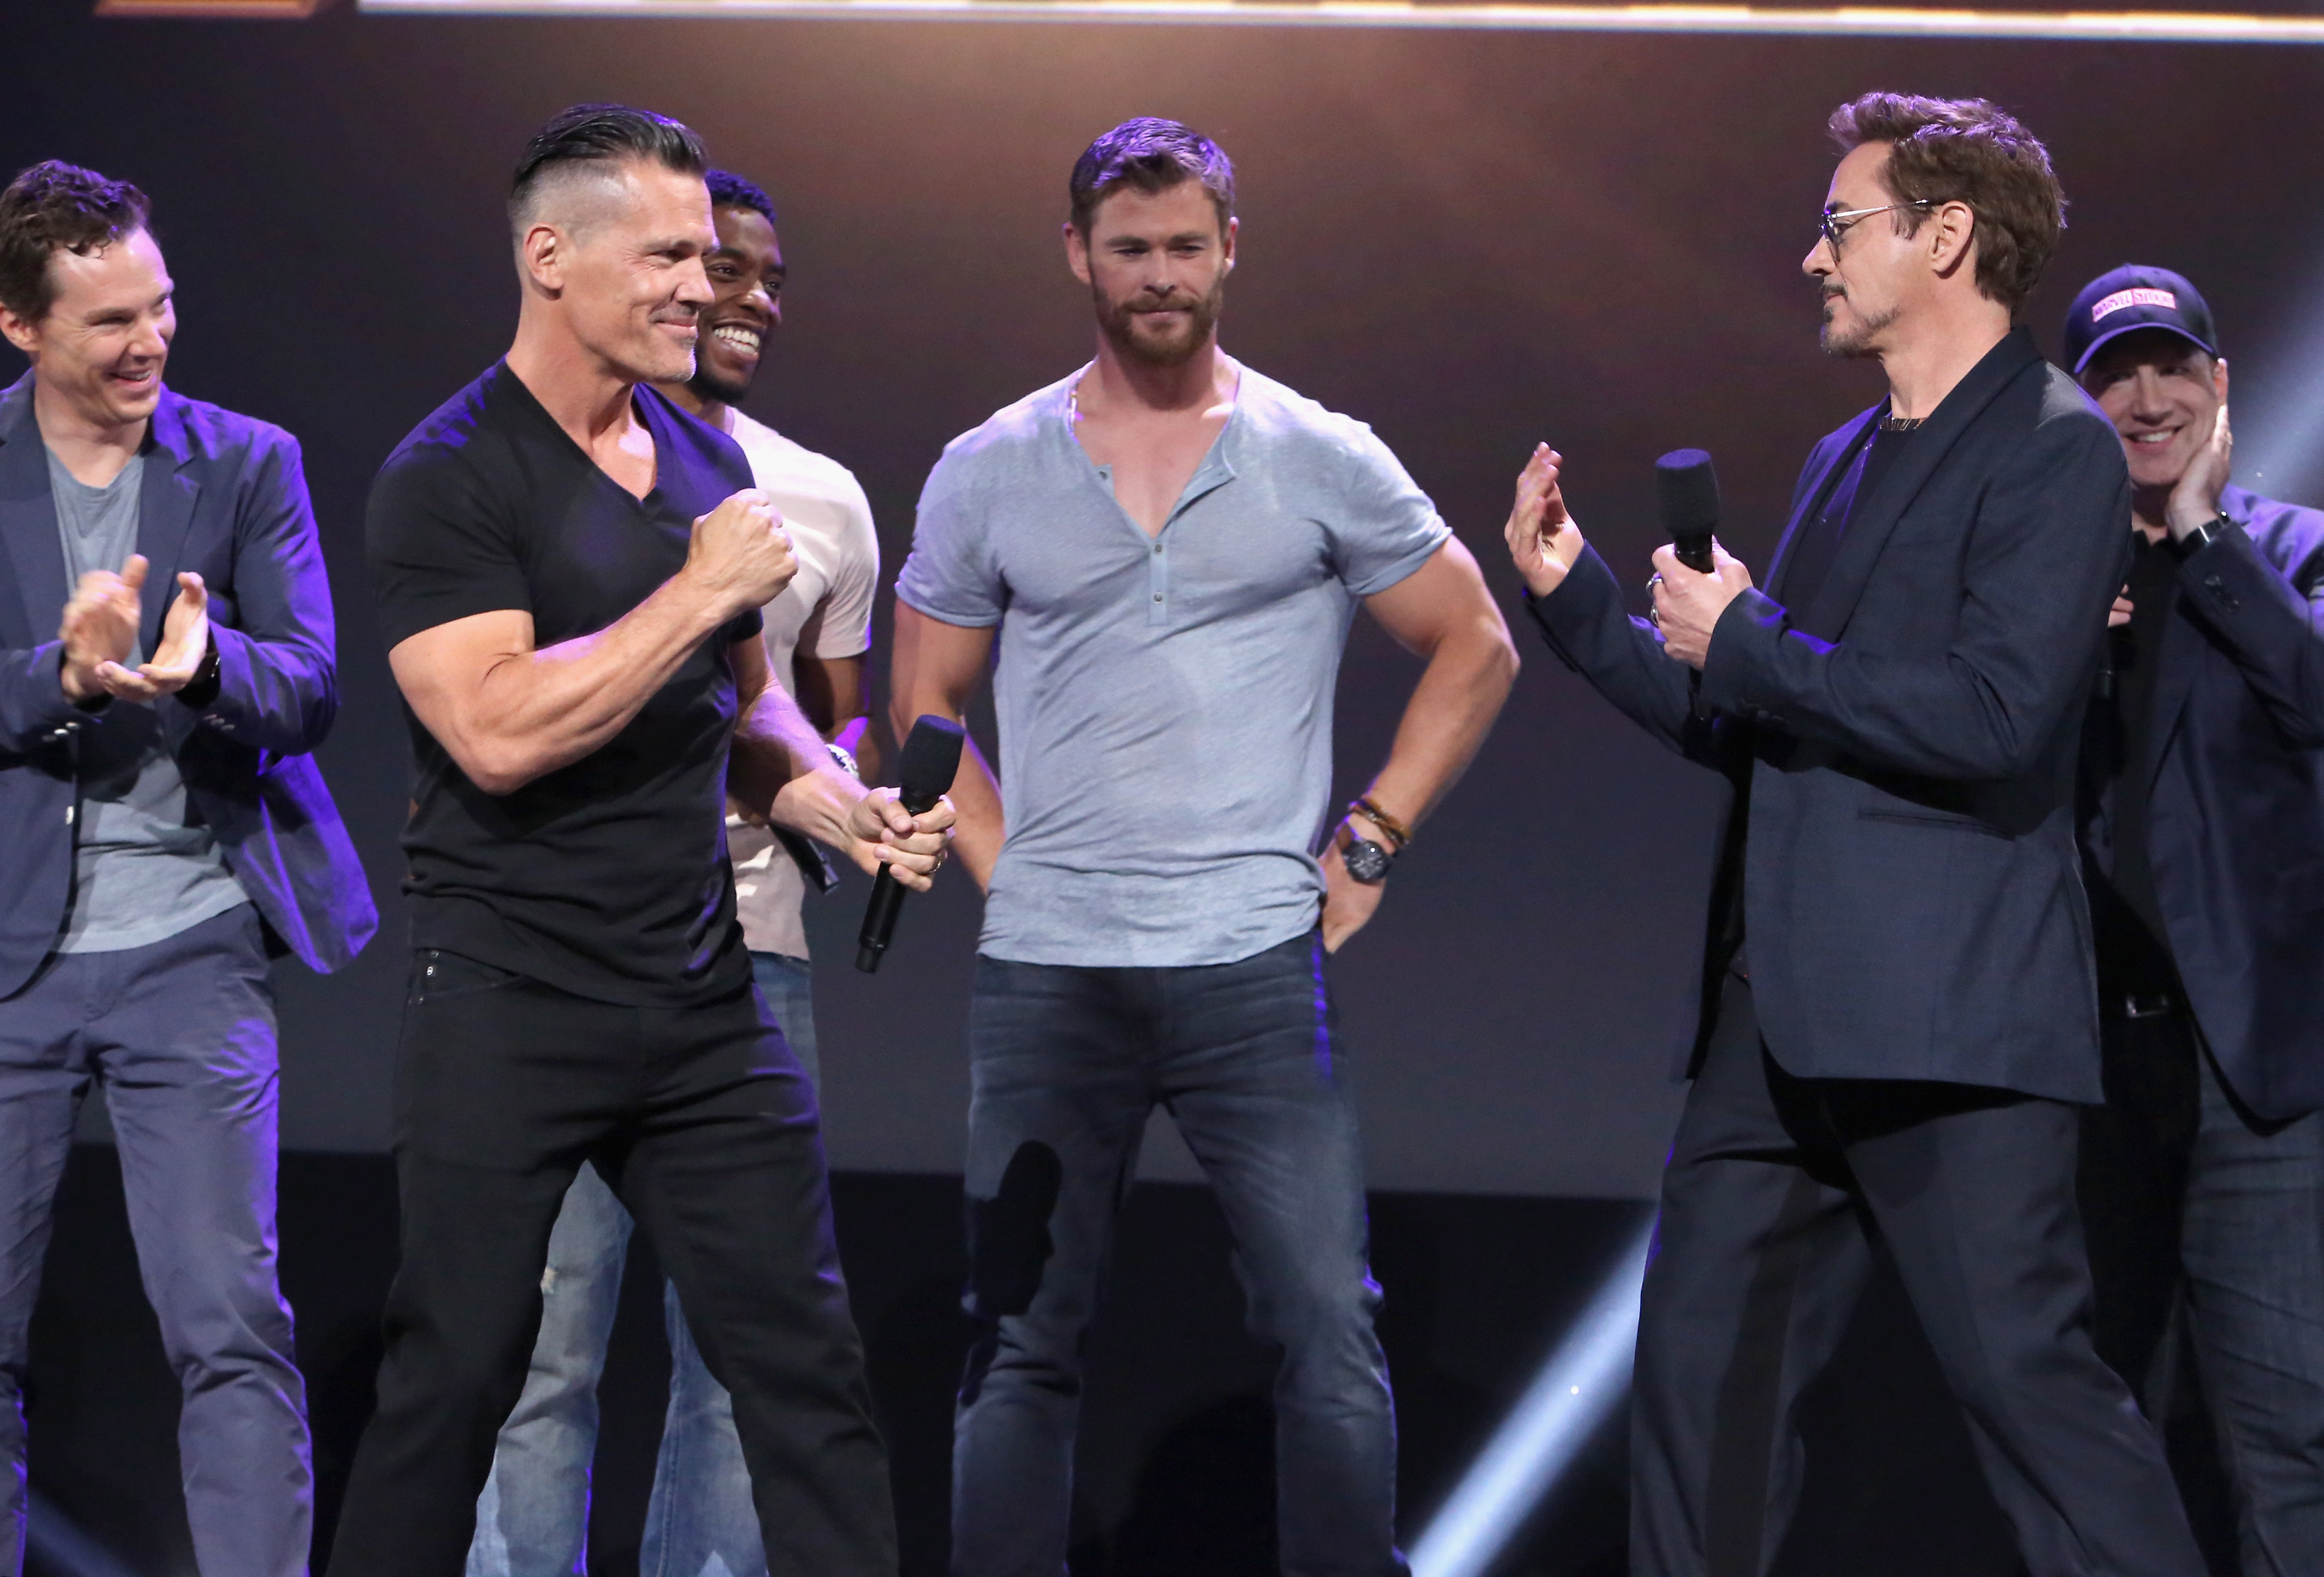 ANAHEIM, CA - JULY 15: (L-R) Actors Benedict Cumberbatch, Josh Brolin, Chadwick Boseman, Chris Hemsworth, and Robert Downey Jr. and producer Kevin Feige of AVENGERS: INFINITY WAR took part today in the Walt Disney Studios live action presentation at Disney's D23 EXPO 2017 in Anaheim, Calif. AVENGERS: INFINITY WAR will be released in U.S. theaters on May 4, 2018. (Photo by Jesse Grant/Getty Images for Disney) *** Local Caption *** Benedict Cumberbatch; Josh Brolin; Chadwick Boseman; Robert Downey Jr.; Kevin Feige; Chris Hemsworth